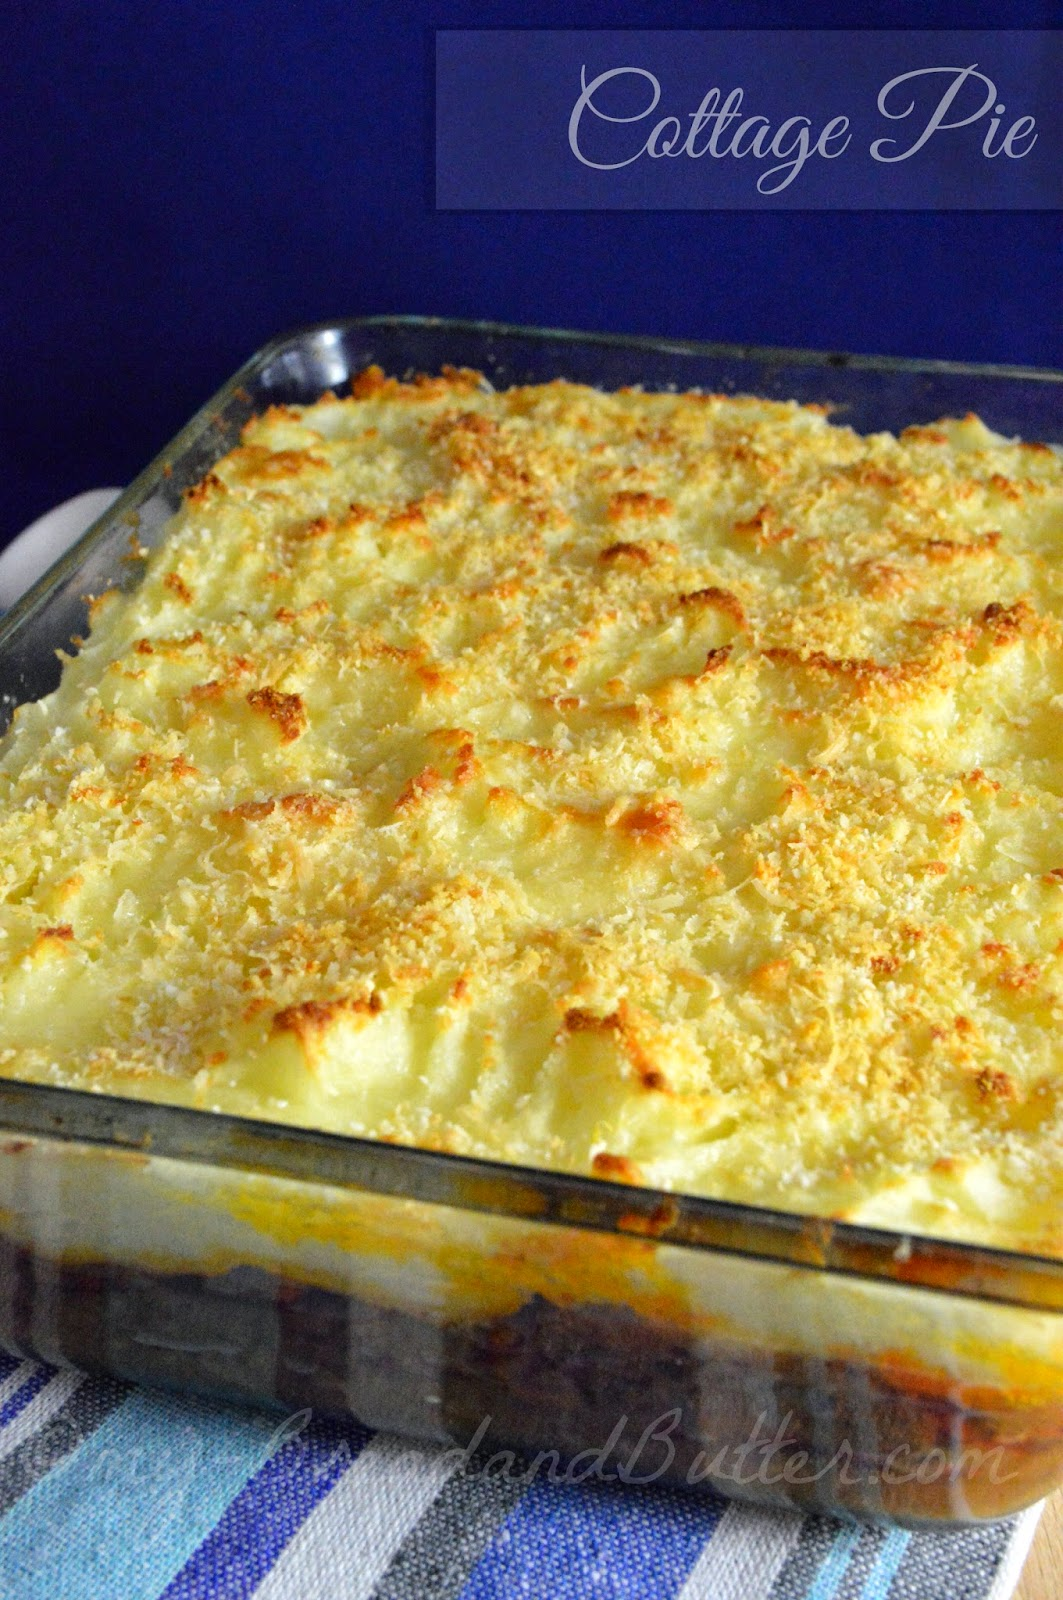 Light  cottage pie